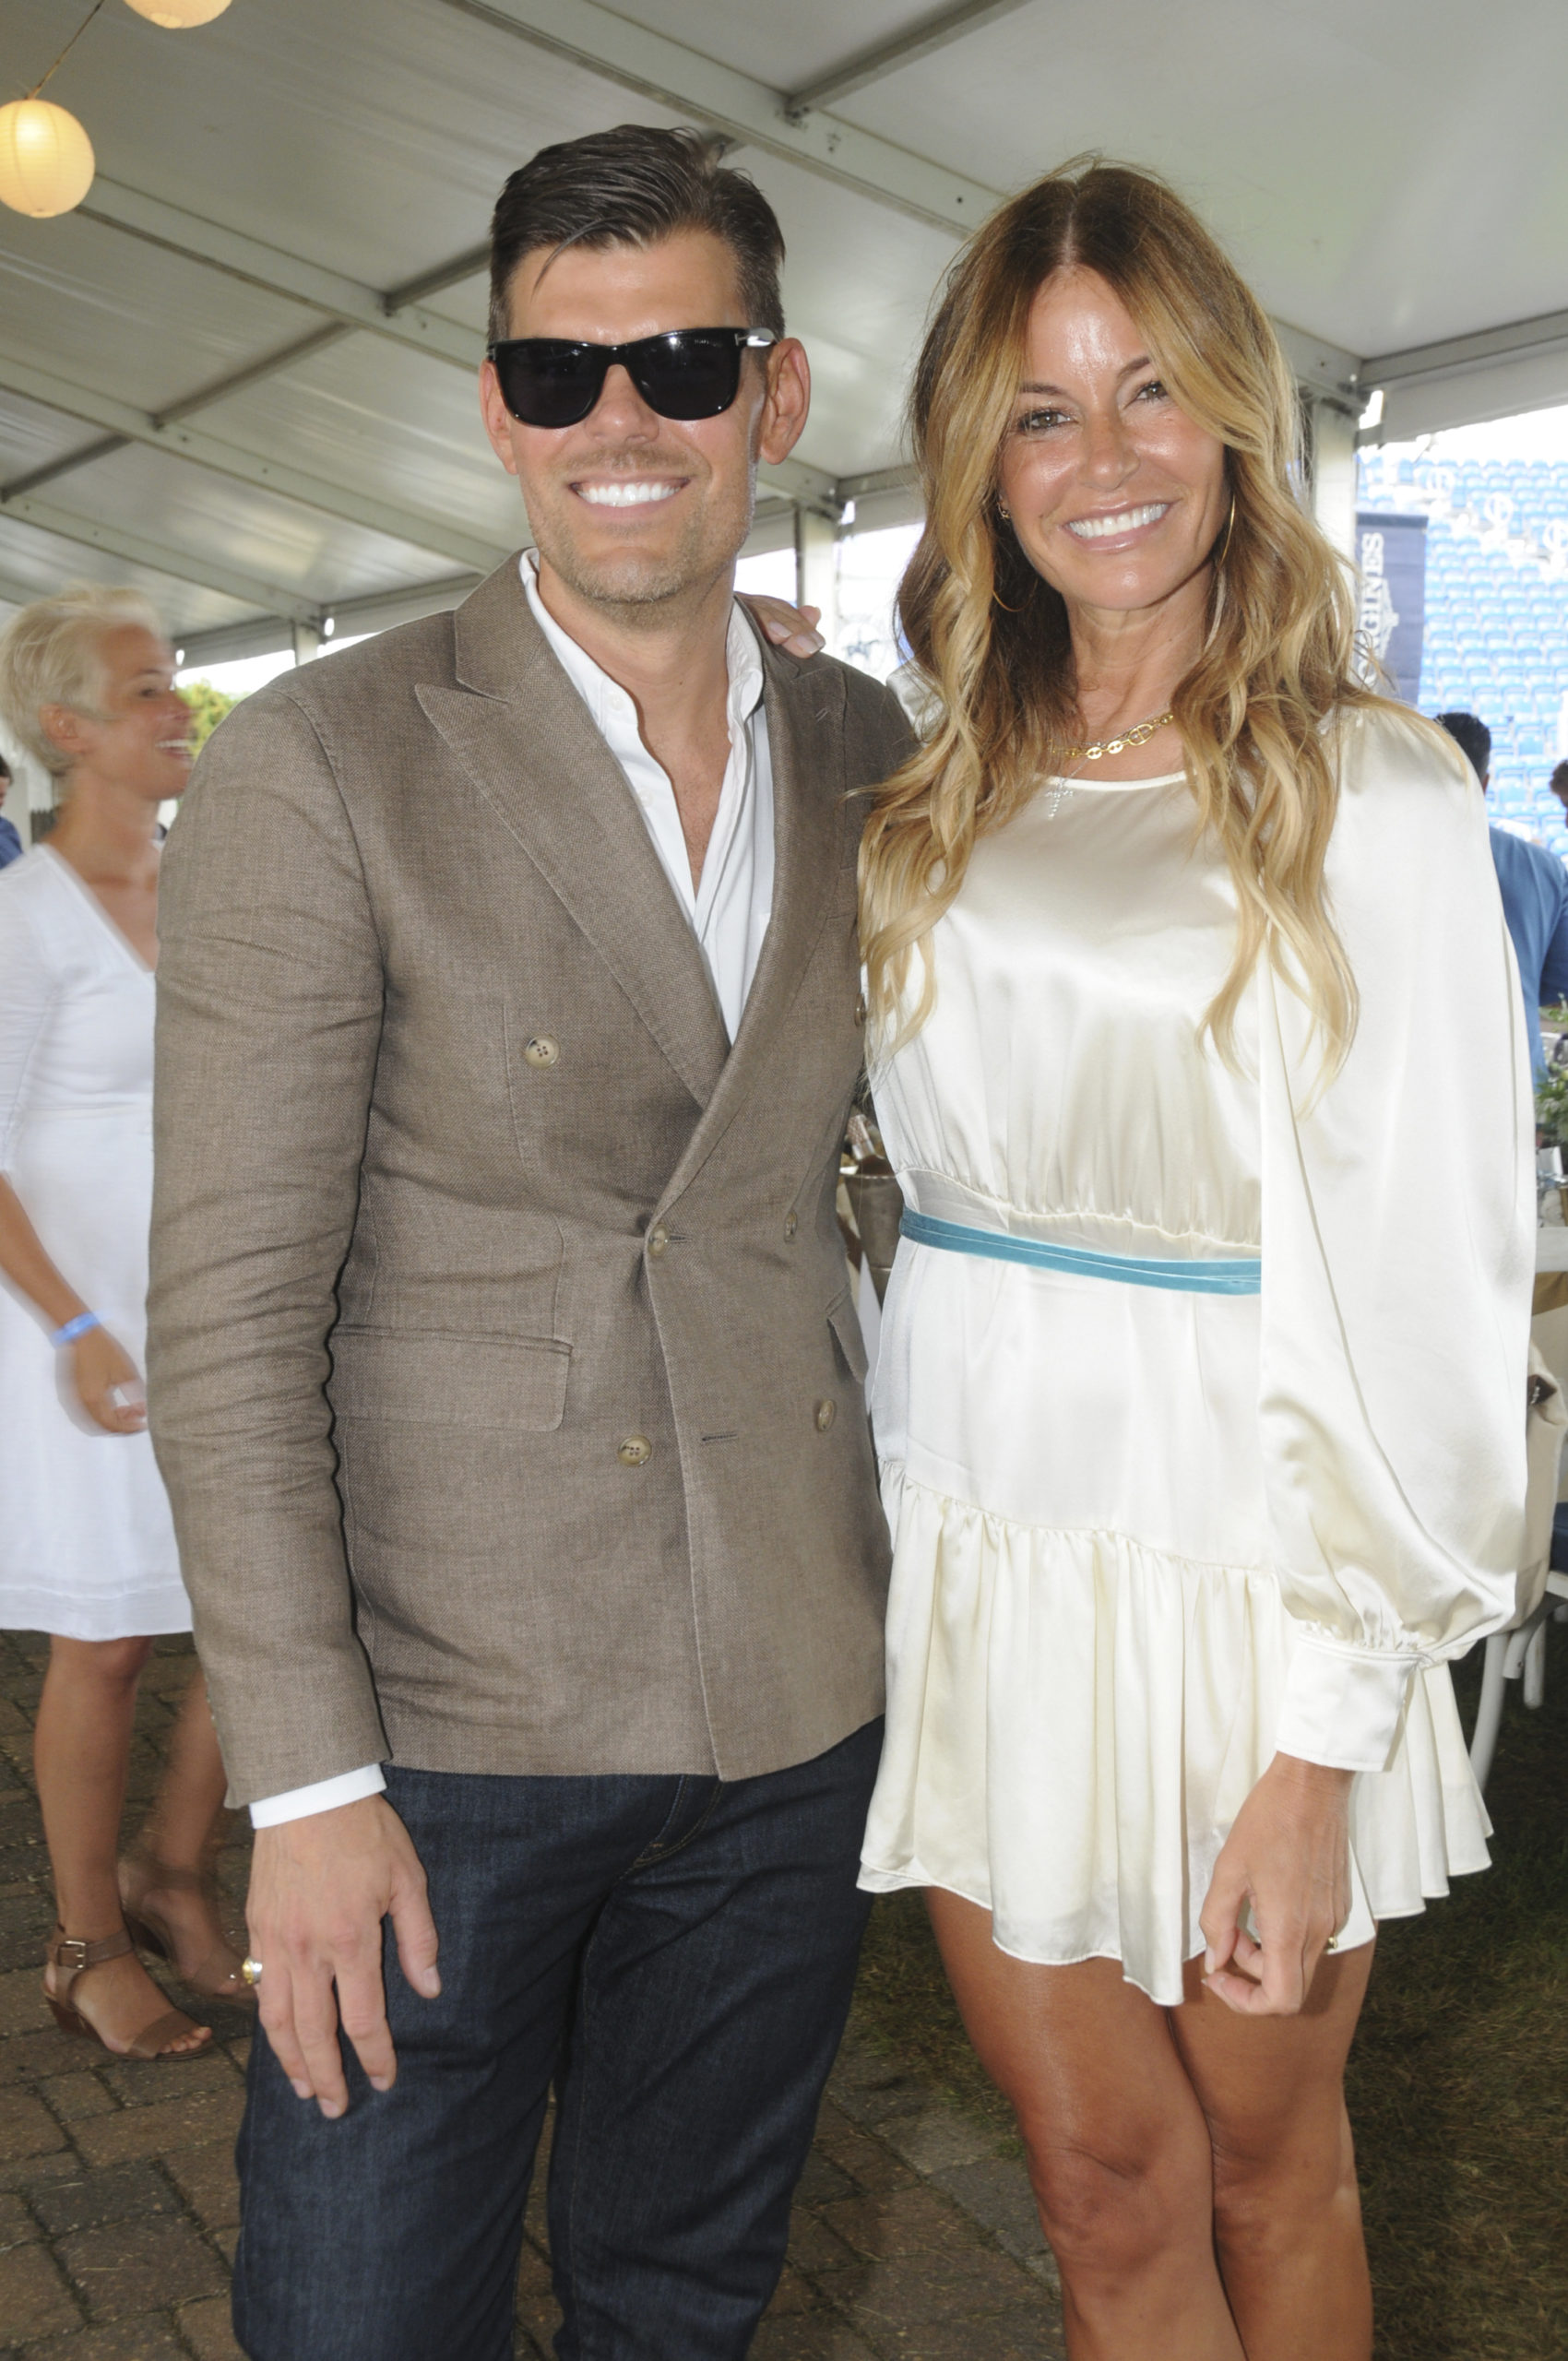 Lee Tucker and Kelly Killoren Bensimon in the tent at the Hamptons Classic Grand Prix on Sunday afternoon.  RICHARD LEWIN